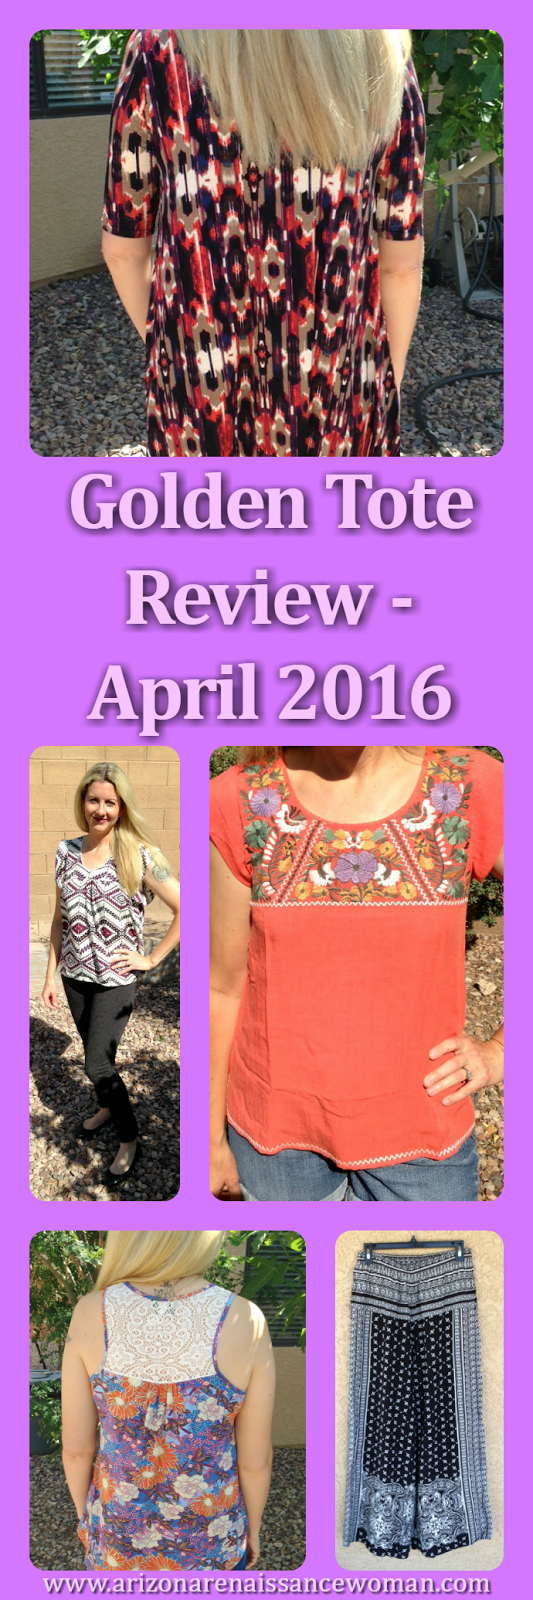 Golden Tote Review and Link-Up - April 2016 Collage